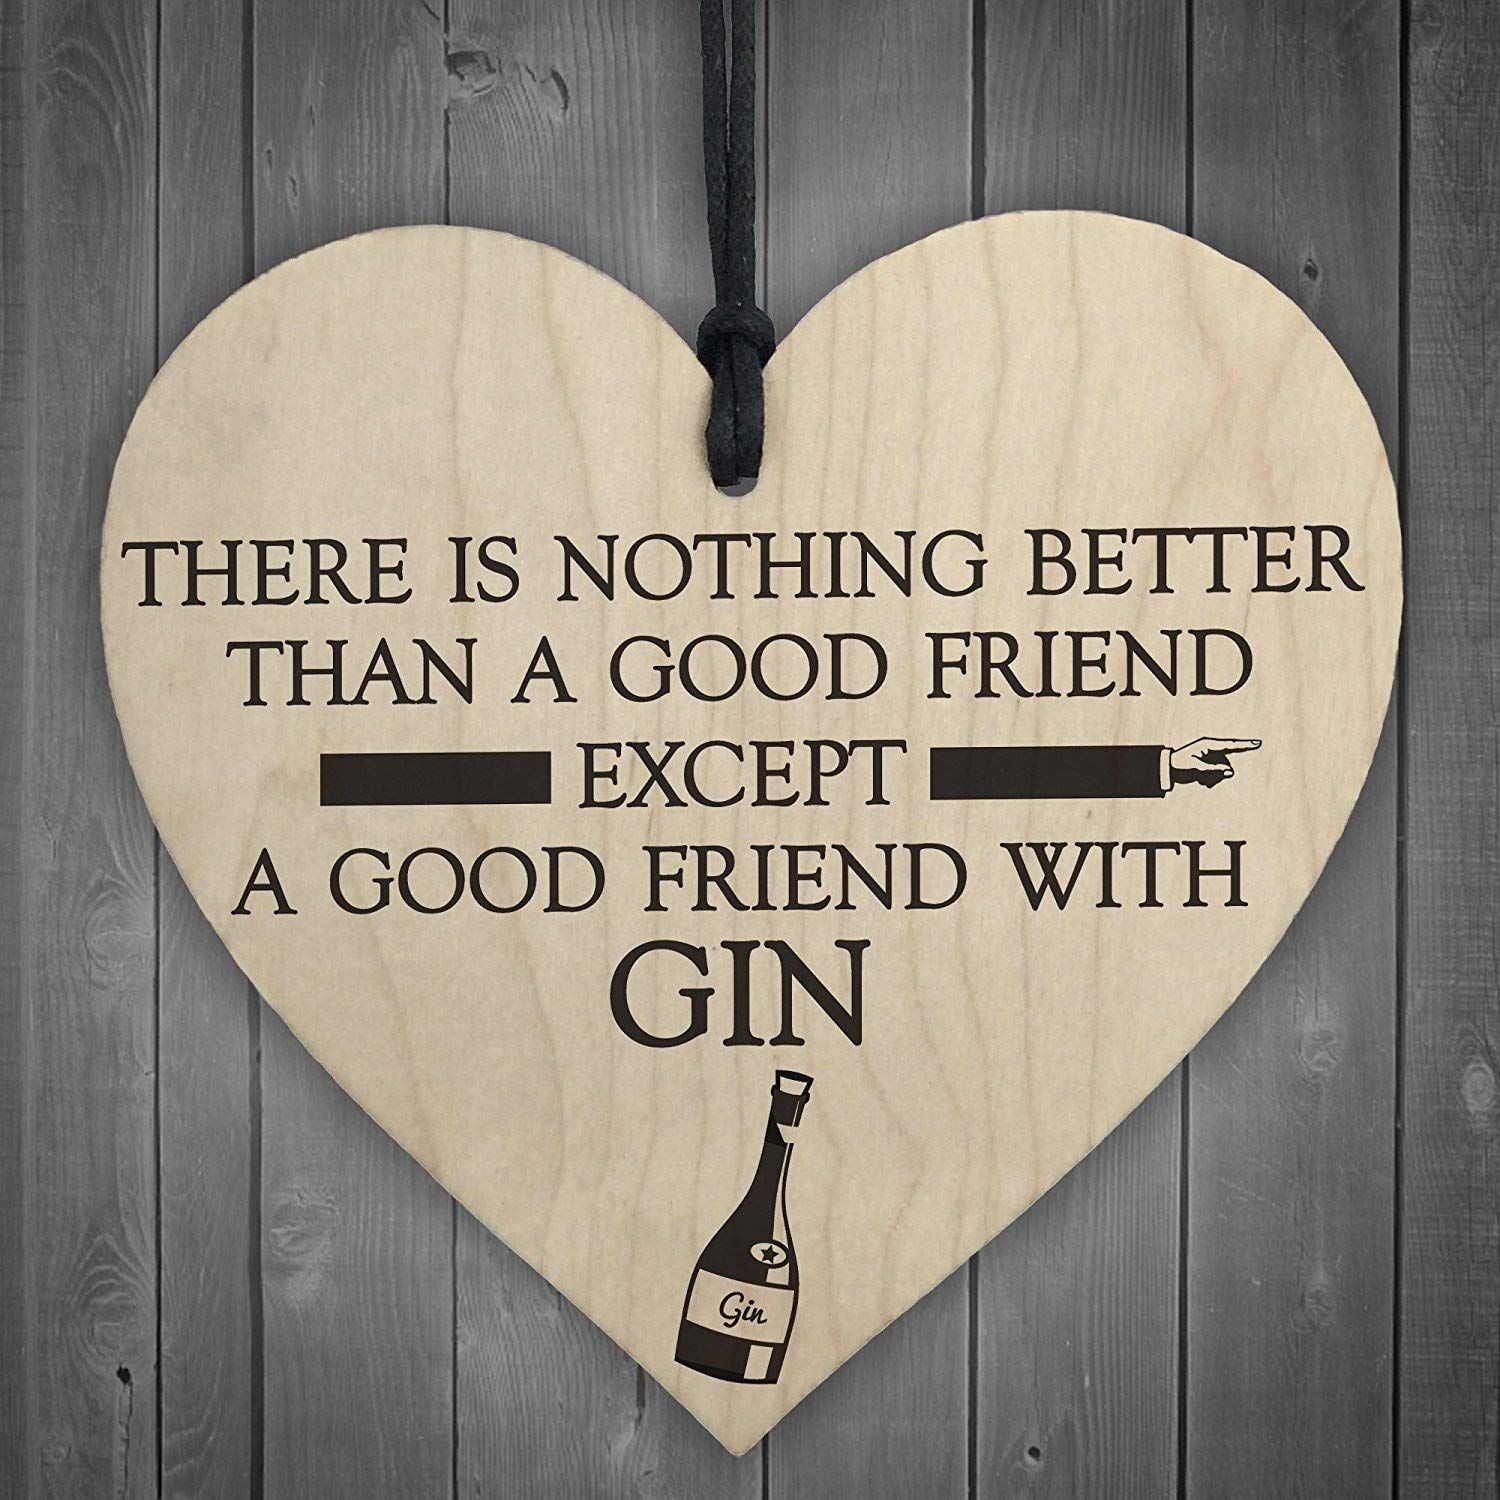 RED OCEAN Good Friend With Gin Novelty Wooden Hanging Heart Plaque Alcohol Joke Sign